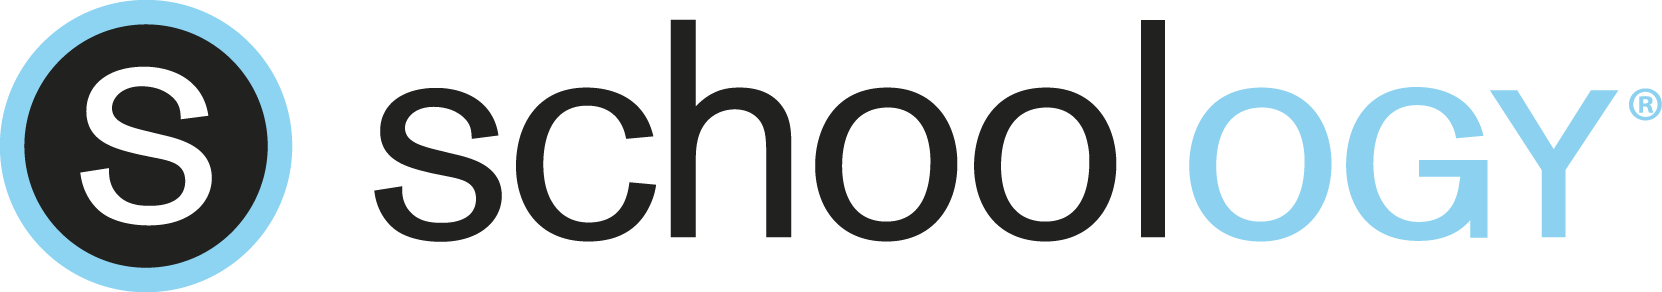 schoology logo white.png